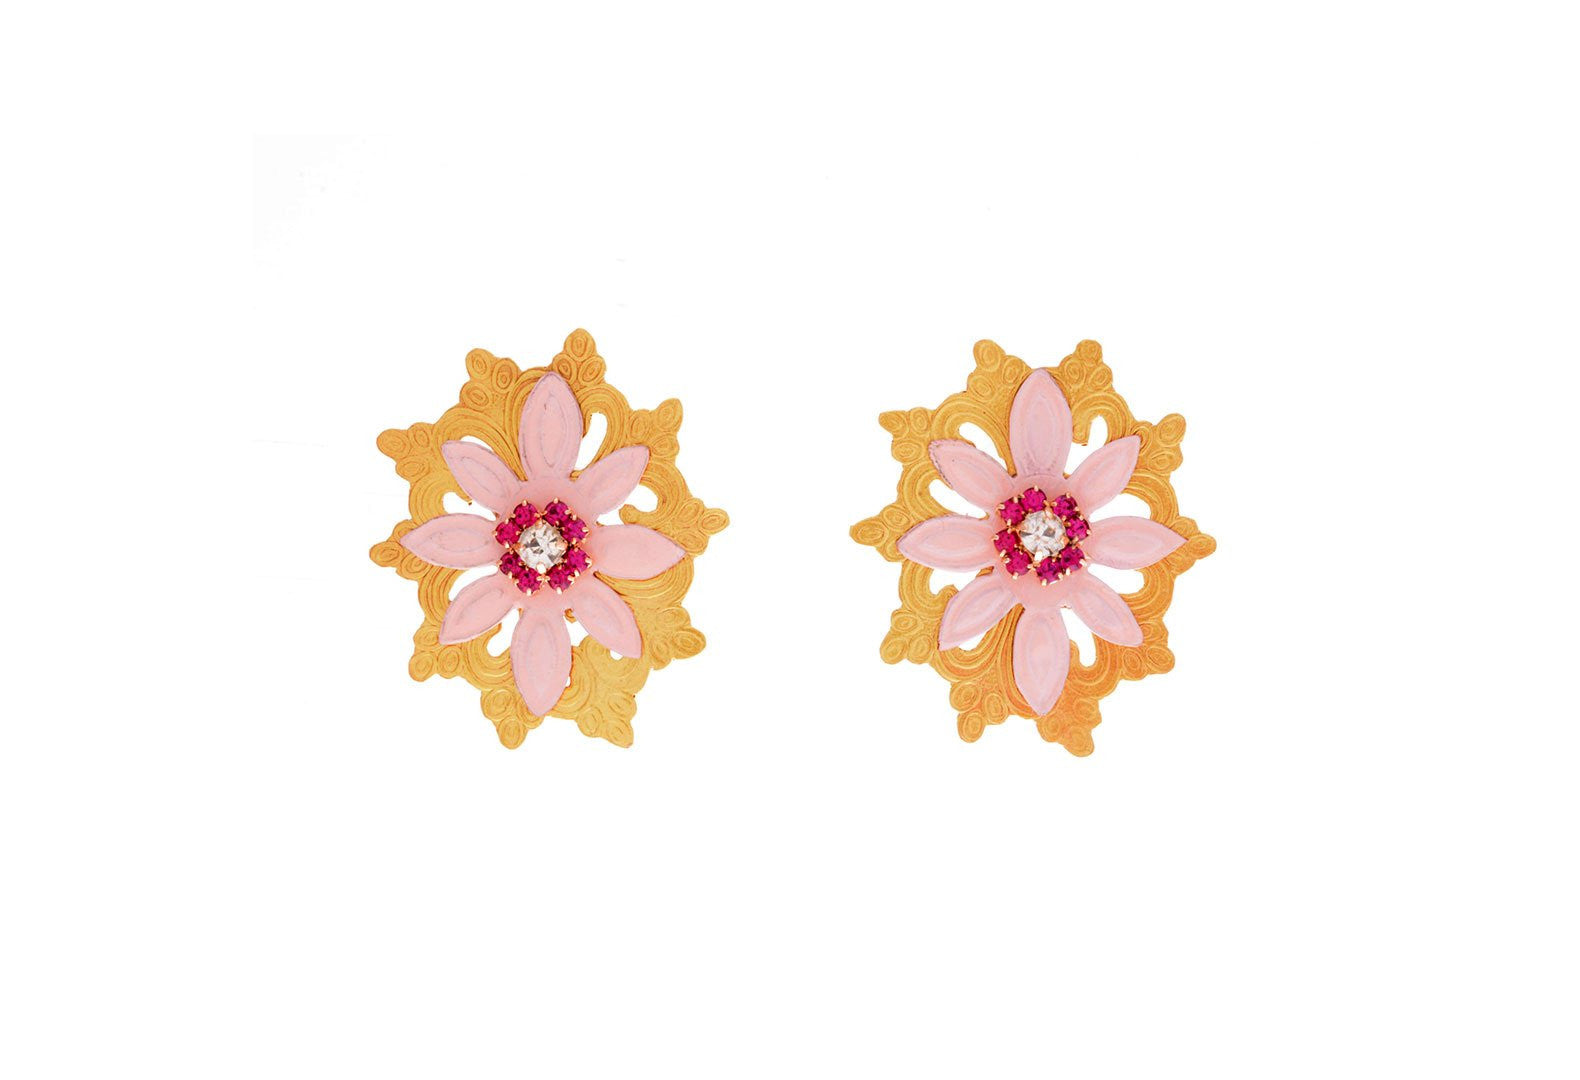 Pink Flora Earrings, Valentina Rosenthal Jewelry, Found By Lesetta